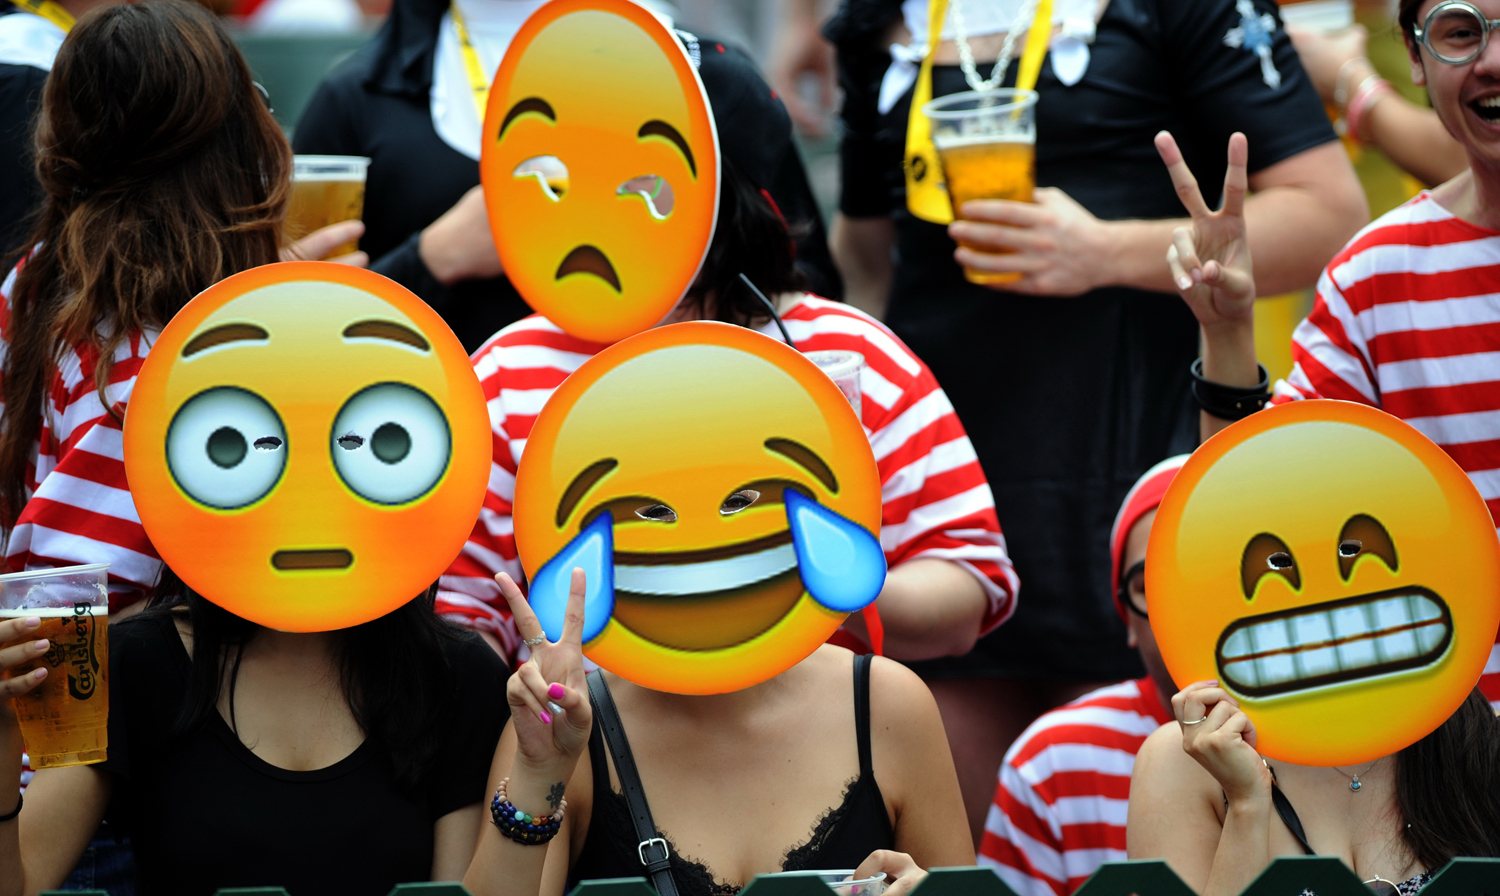 Fans wearing emoji masks watch a rugby match of the Hong Kong Seven in Hong Kong on March 28, 2015